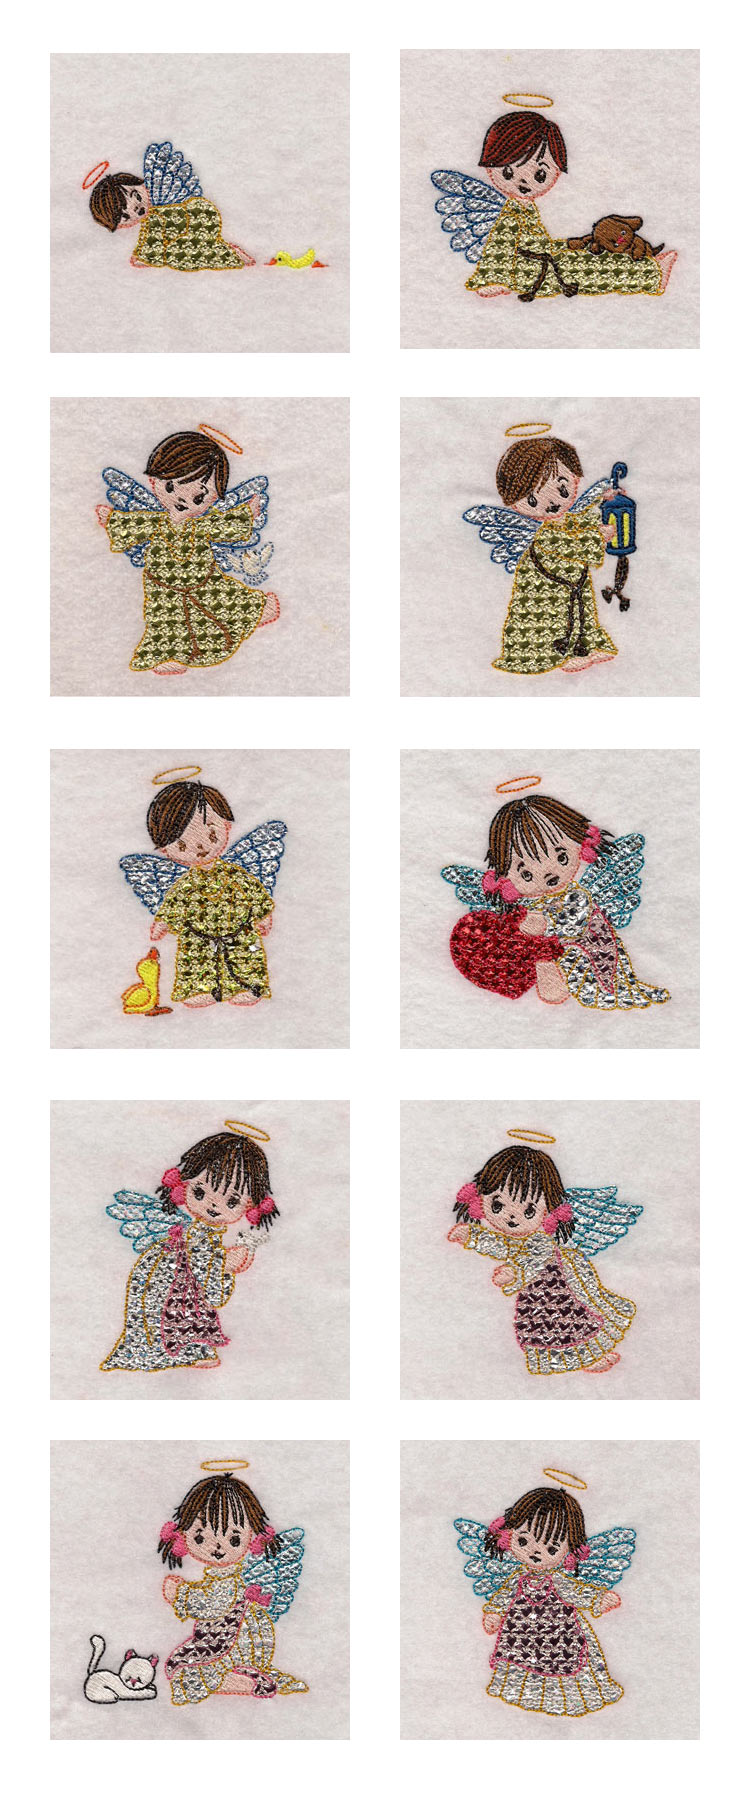 Mylar Cute Angels Embroidery Machine Design Details